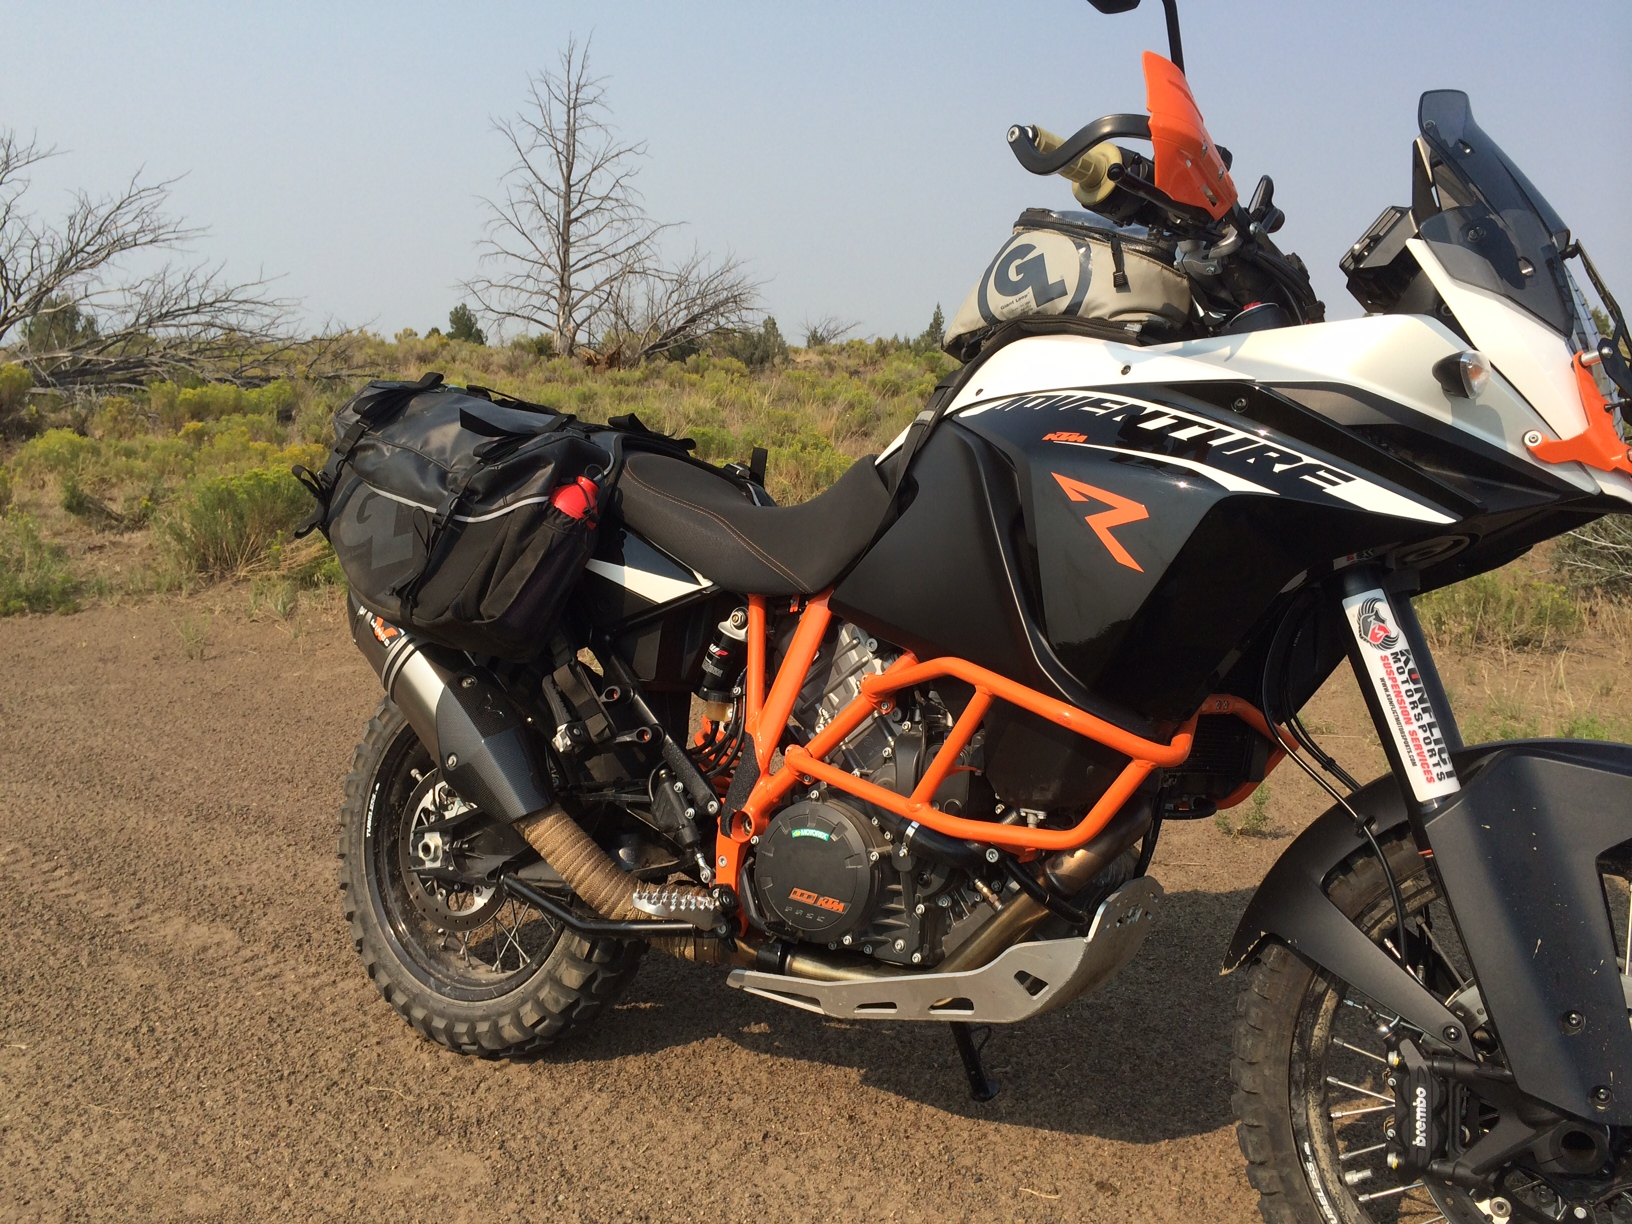 tech tip: ktm 1190 adventure with siskiyou panniers, fandango tank